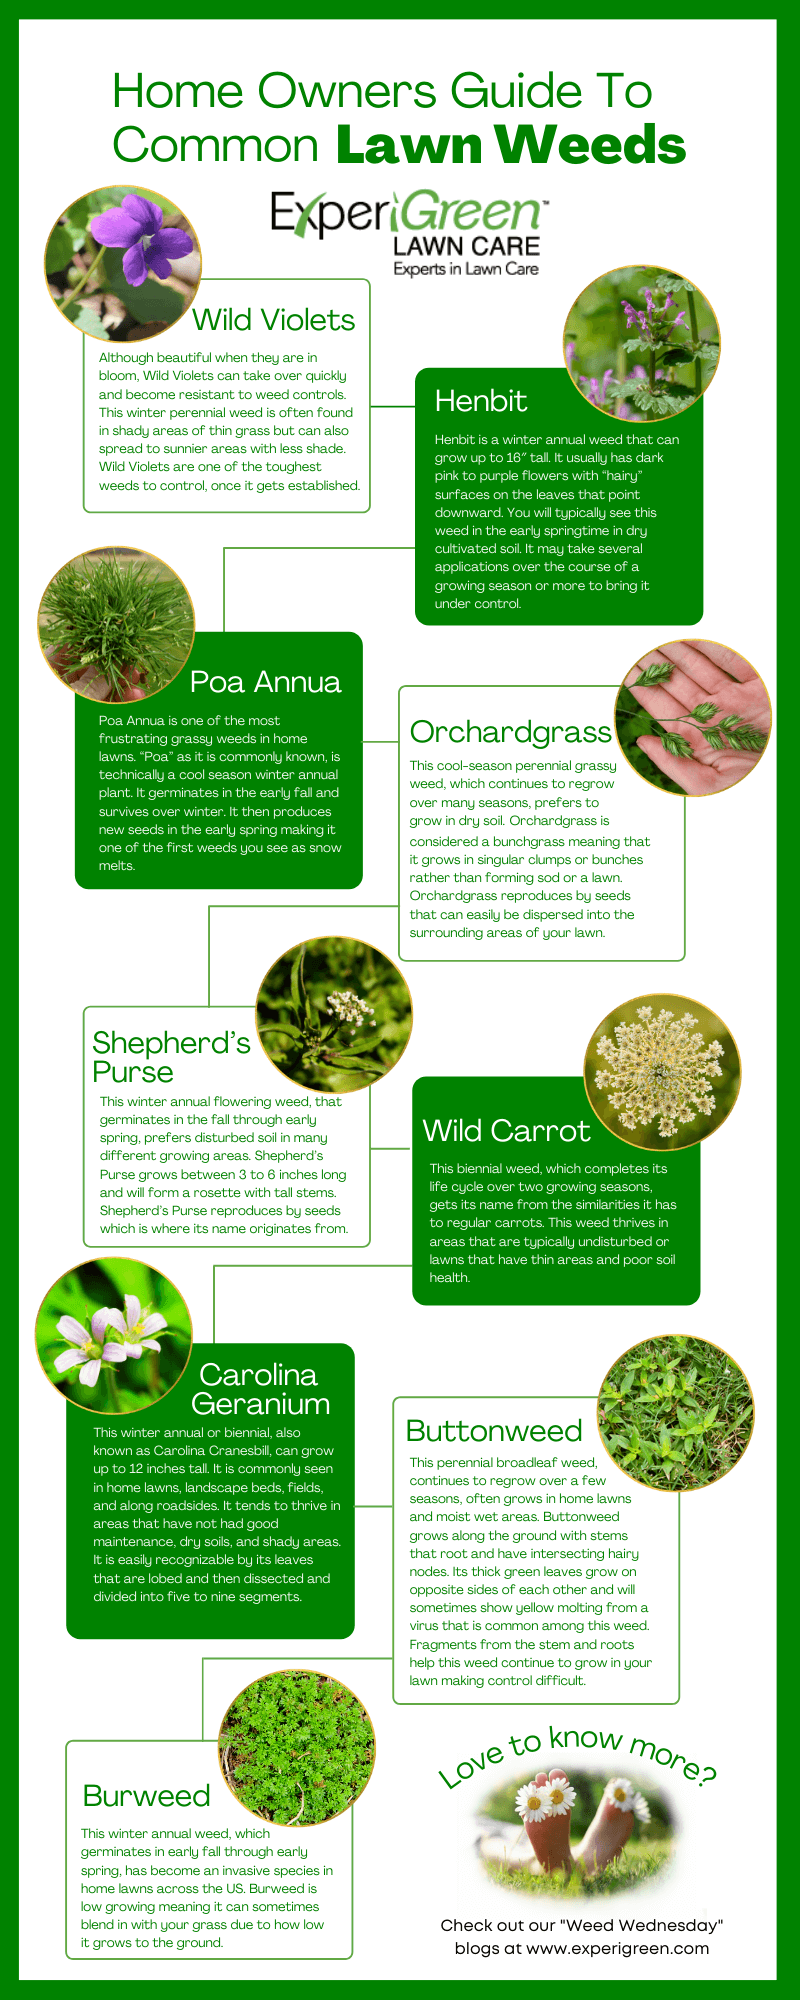 Home Owners Guide To Common Lawn Weeds By ExperiGreen's Weed Wednesday